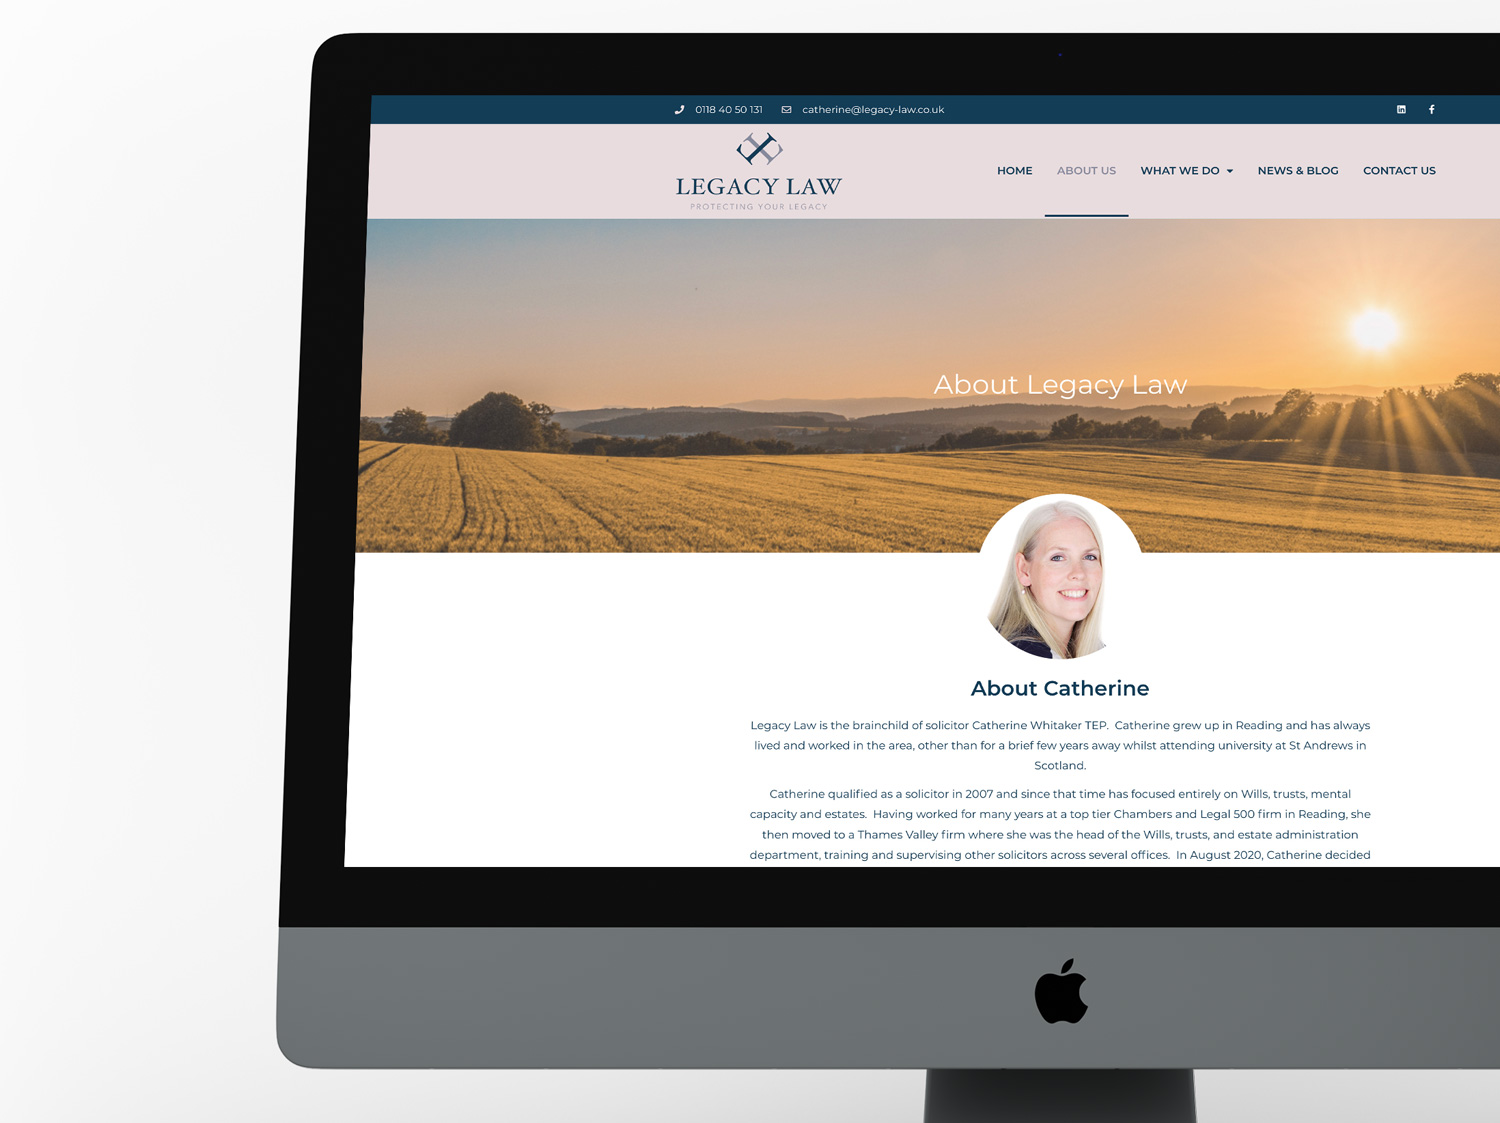 Website Design and Build for Legacy Law - by My Name is Dan